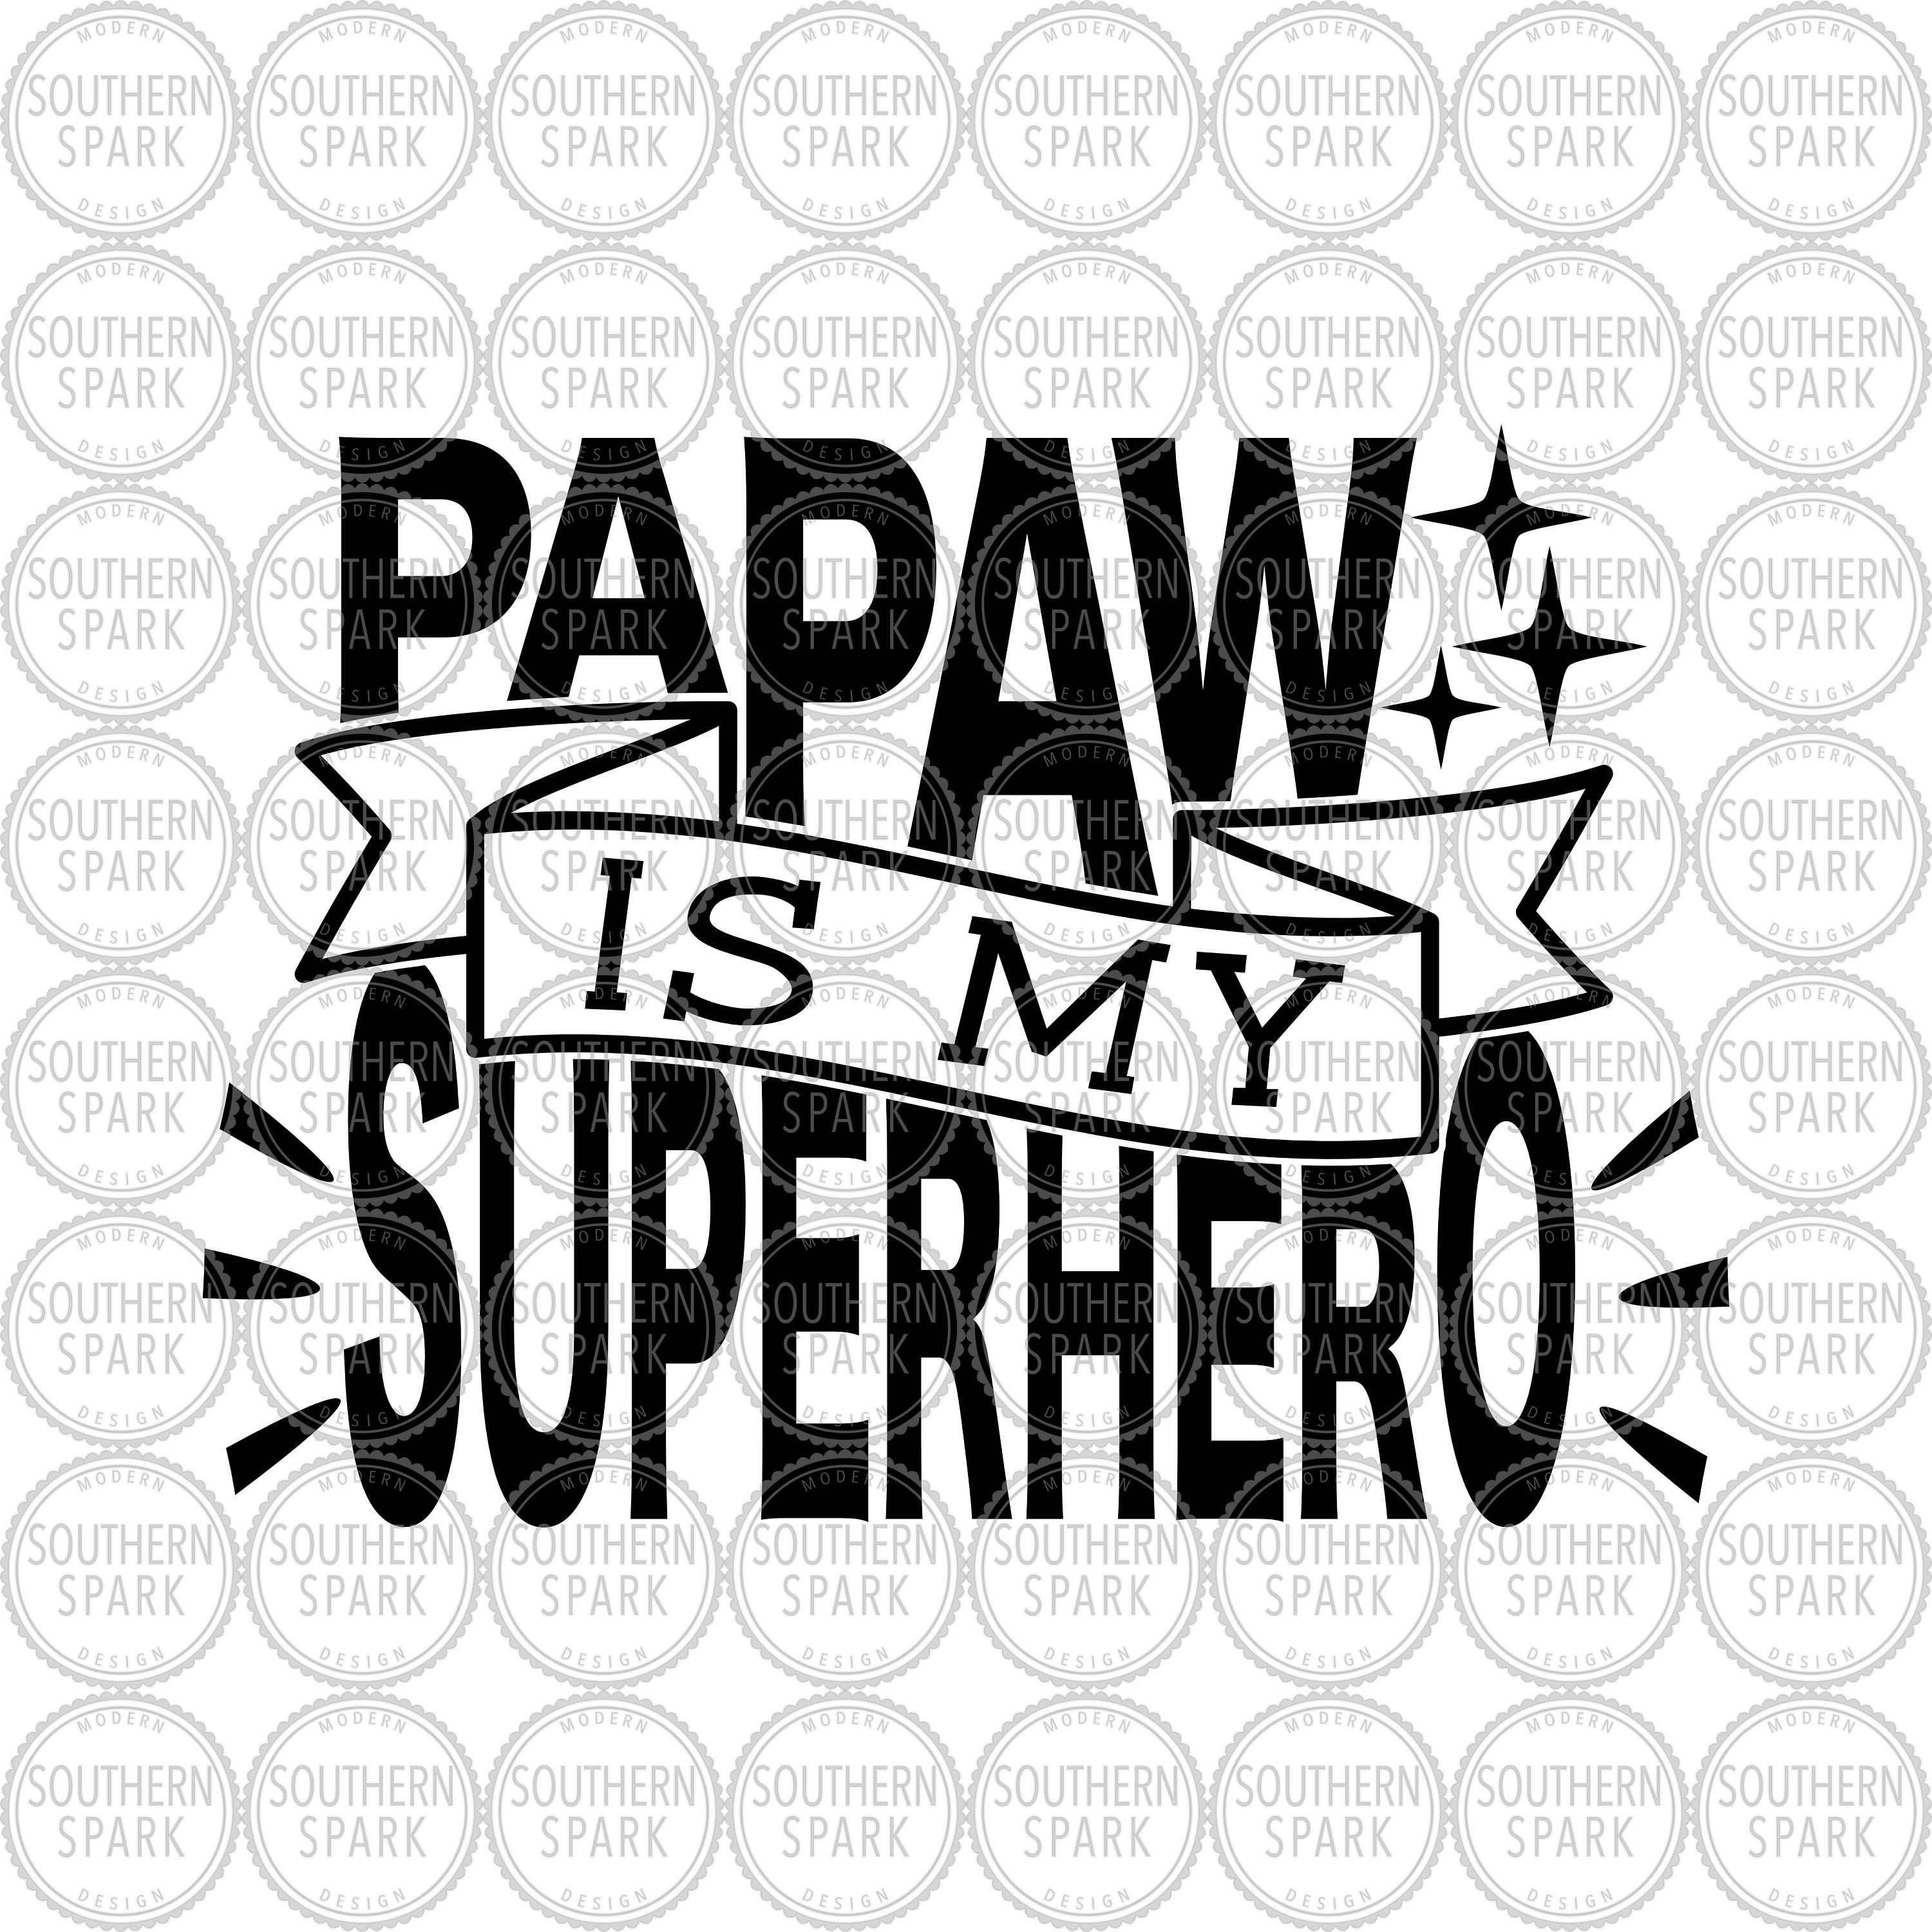 Free Ask pupils to try and reduce paragraphs 3 to 8 to about a half of their current length, while maintaining as much of the essential information as possible. Father S Day Svg Papaw Is My Superhero Svg Papaw Svg Etsy My Superhero Svg Clip Art SVG, PNG, EPS, DXF File